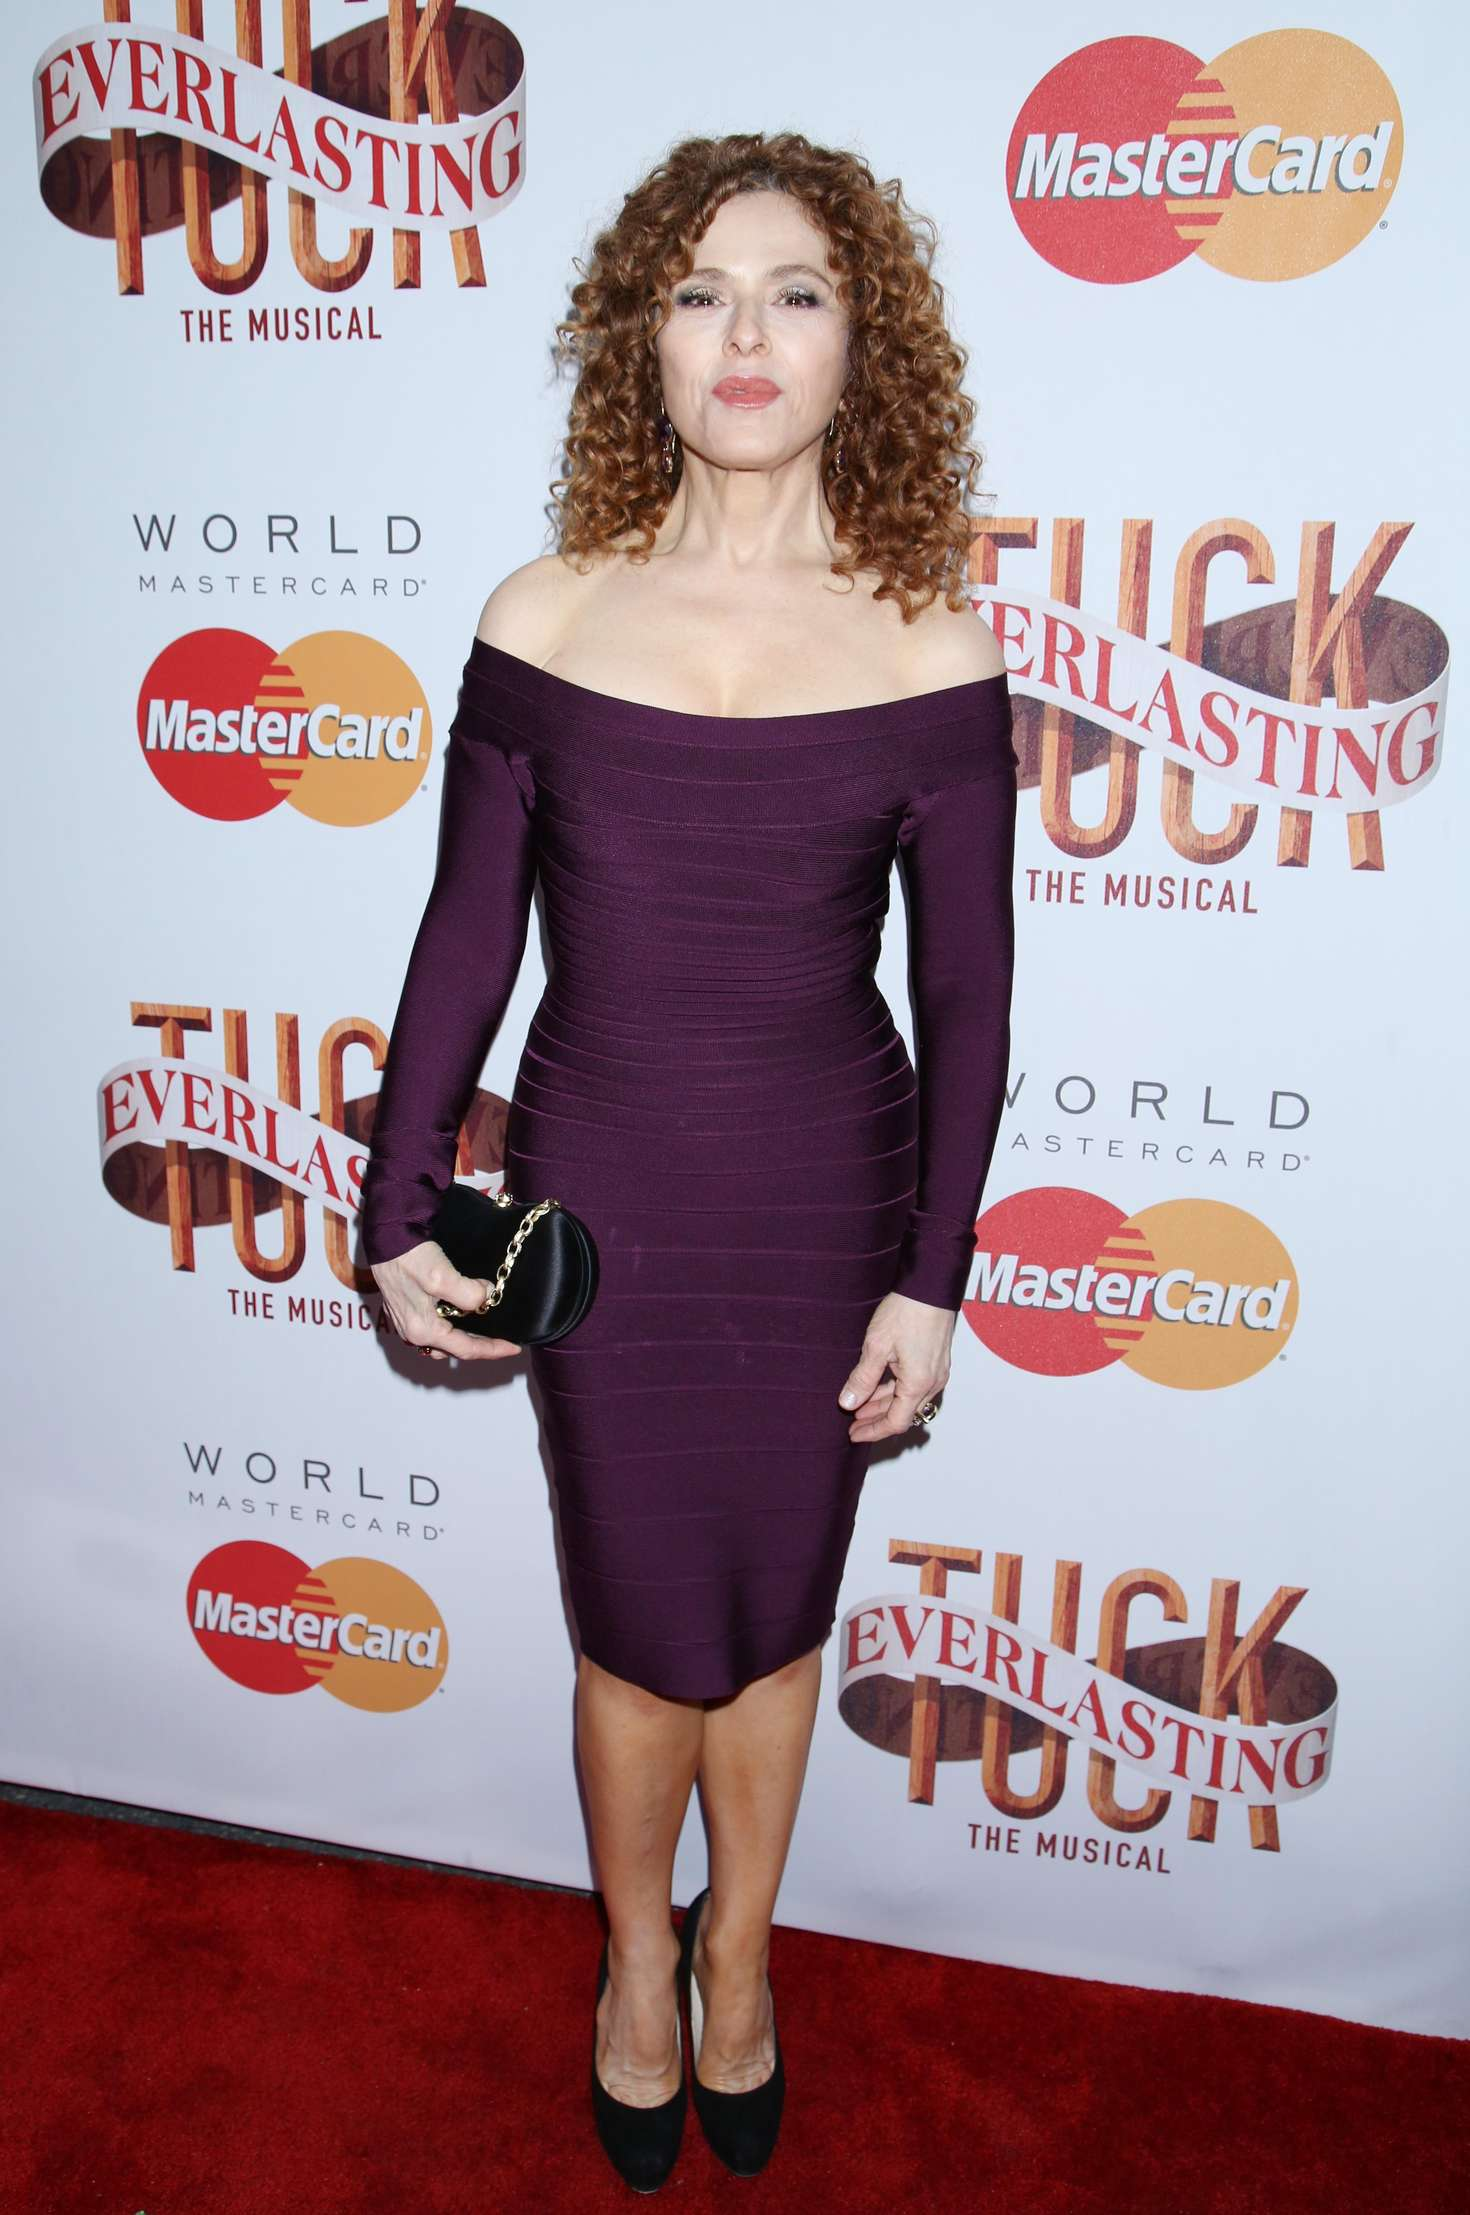 Bernadette Peters Tuck Everlasting Broadway Opening Night in New York